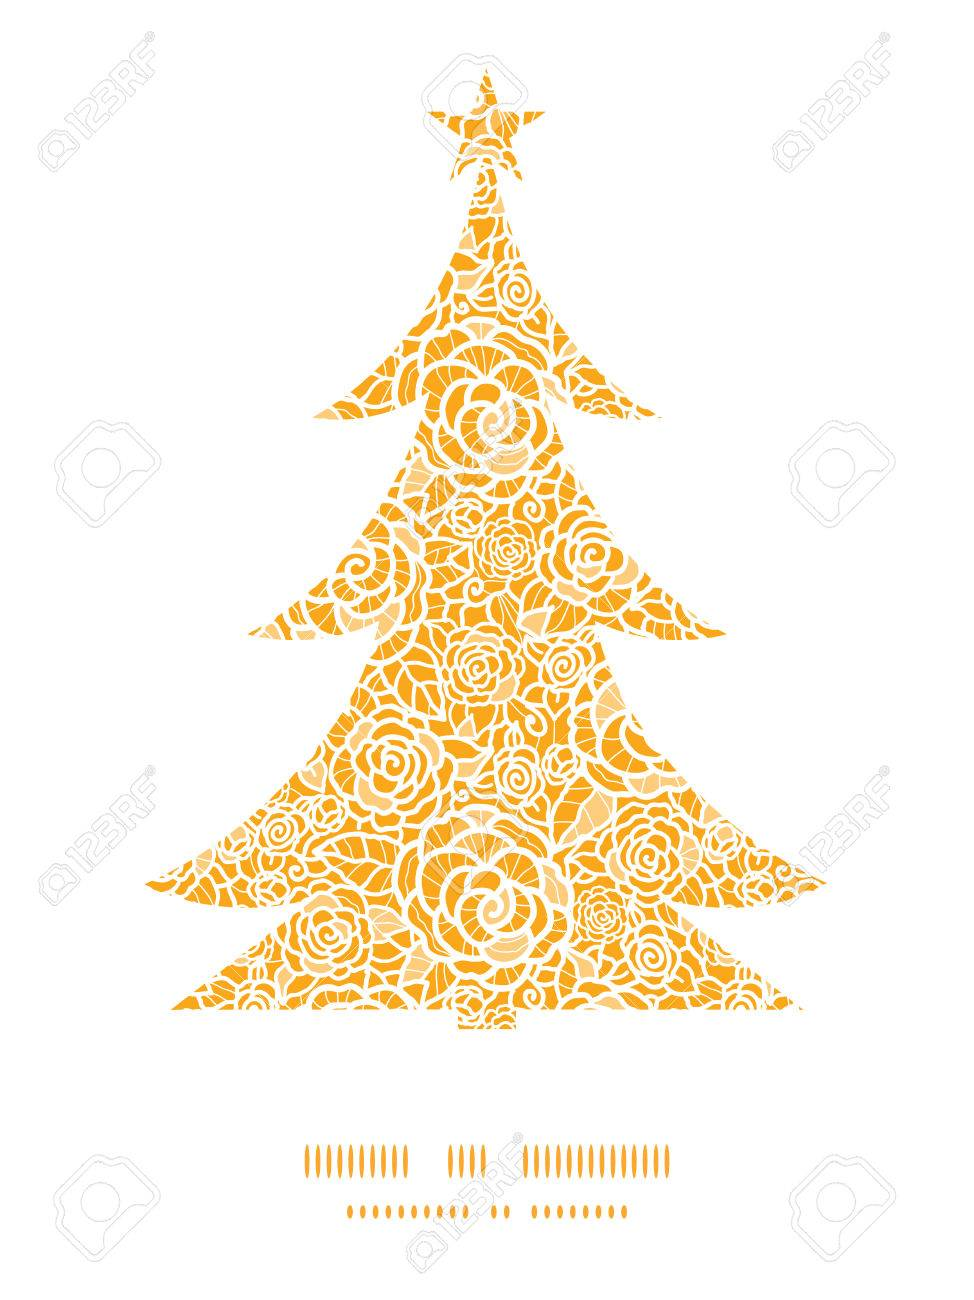 vector golden lace roses christmas tree silhouette pattern frame